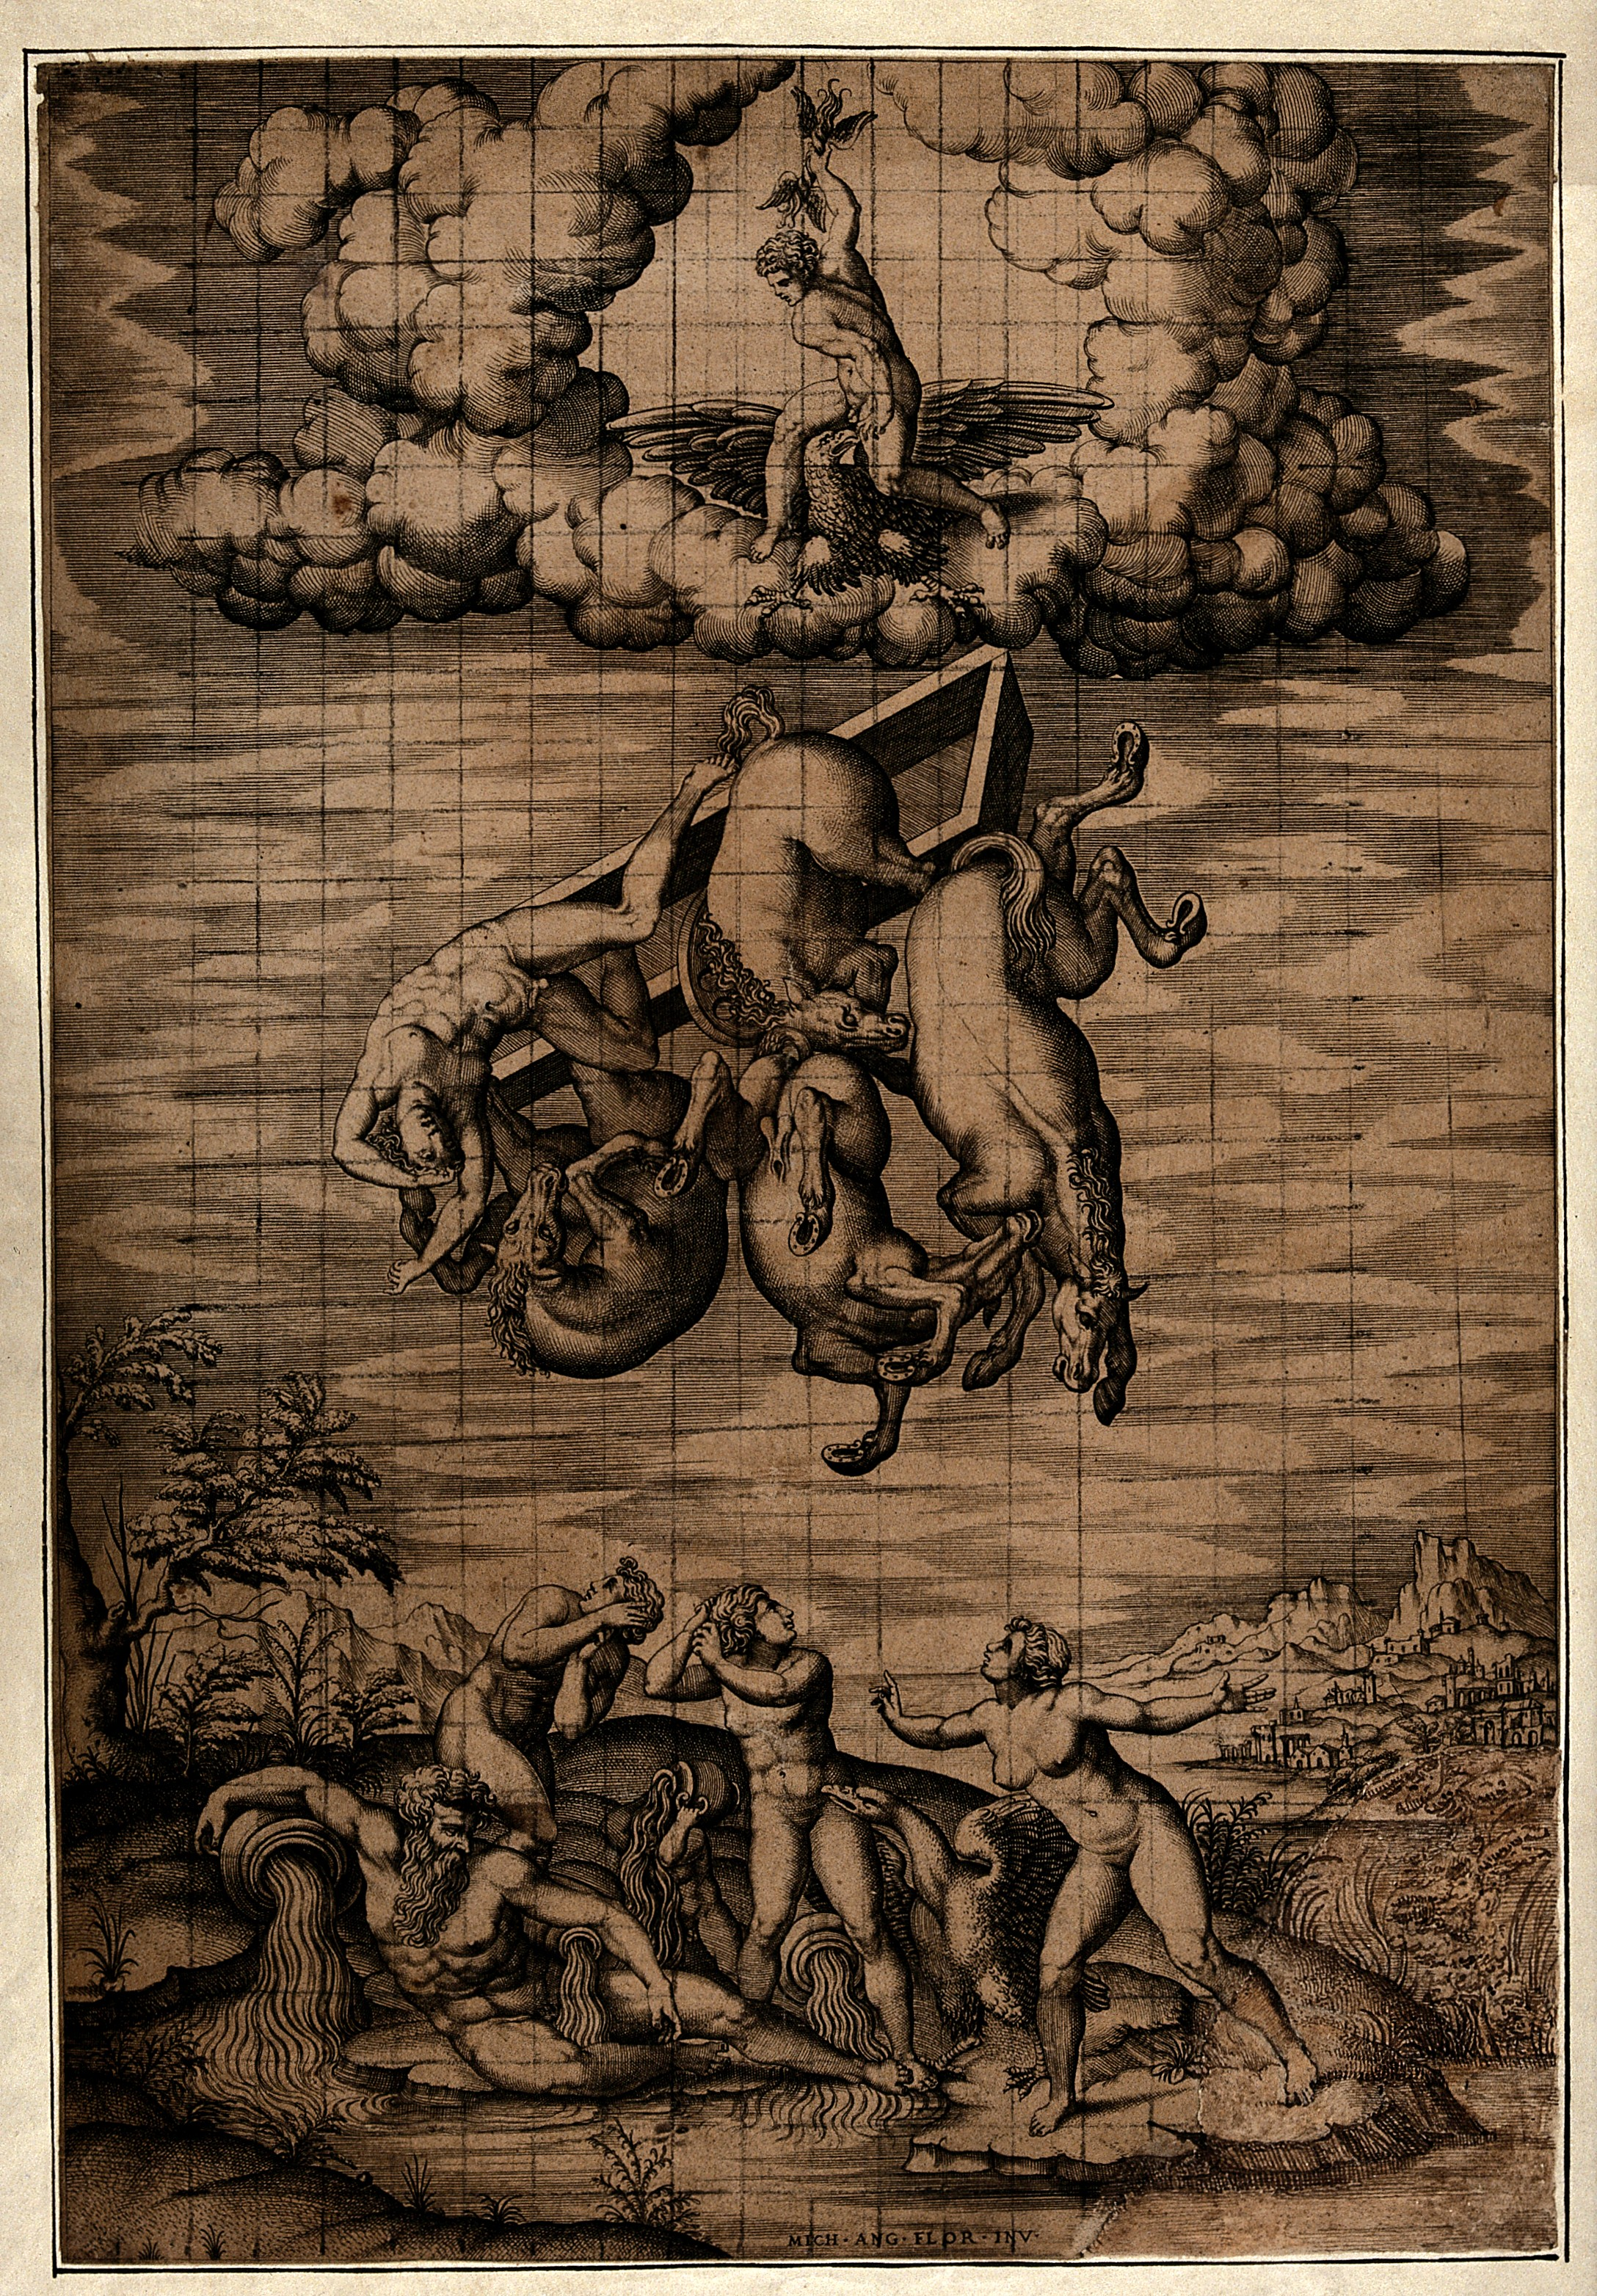 File:The fall of Phaeton. Engraving by N. Beatrizet after M. Buon